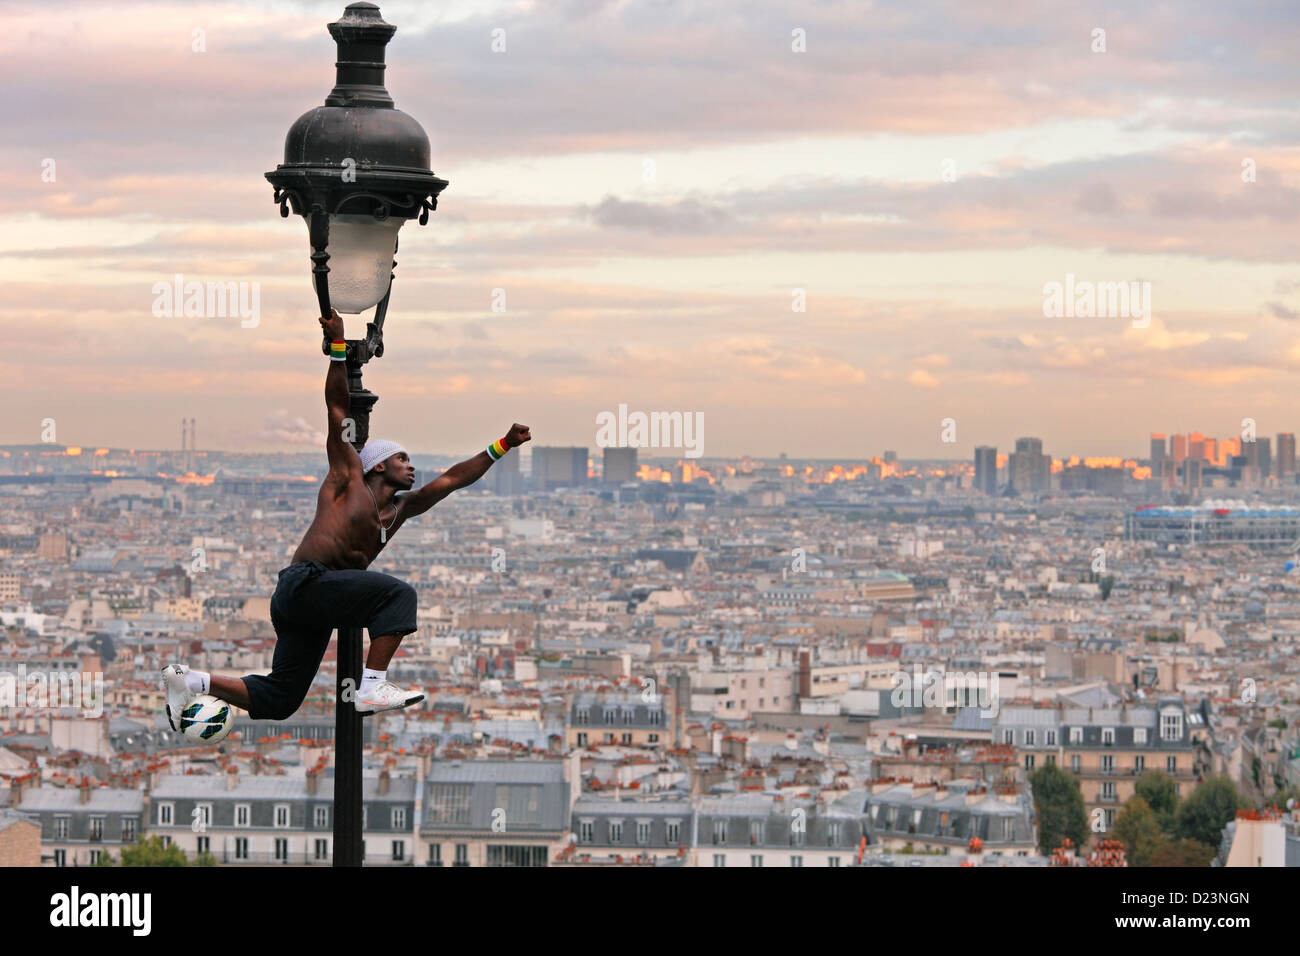 acrobatic performance artist at an old gas lamp on the hill of Sacre Coeur and view of Montmartre and Paris - Stock Image